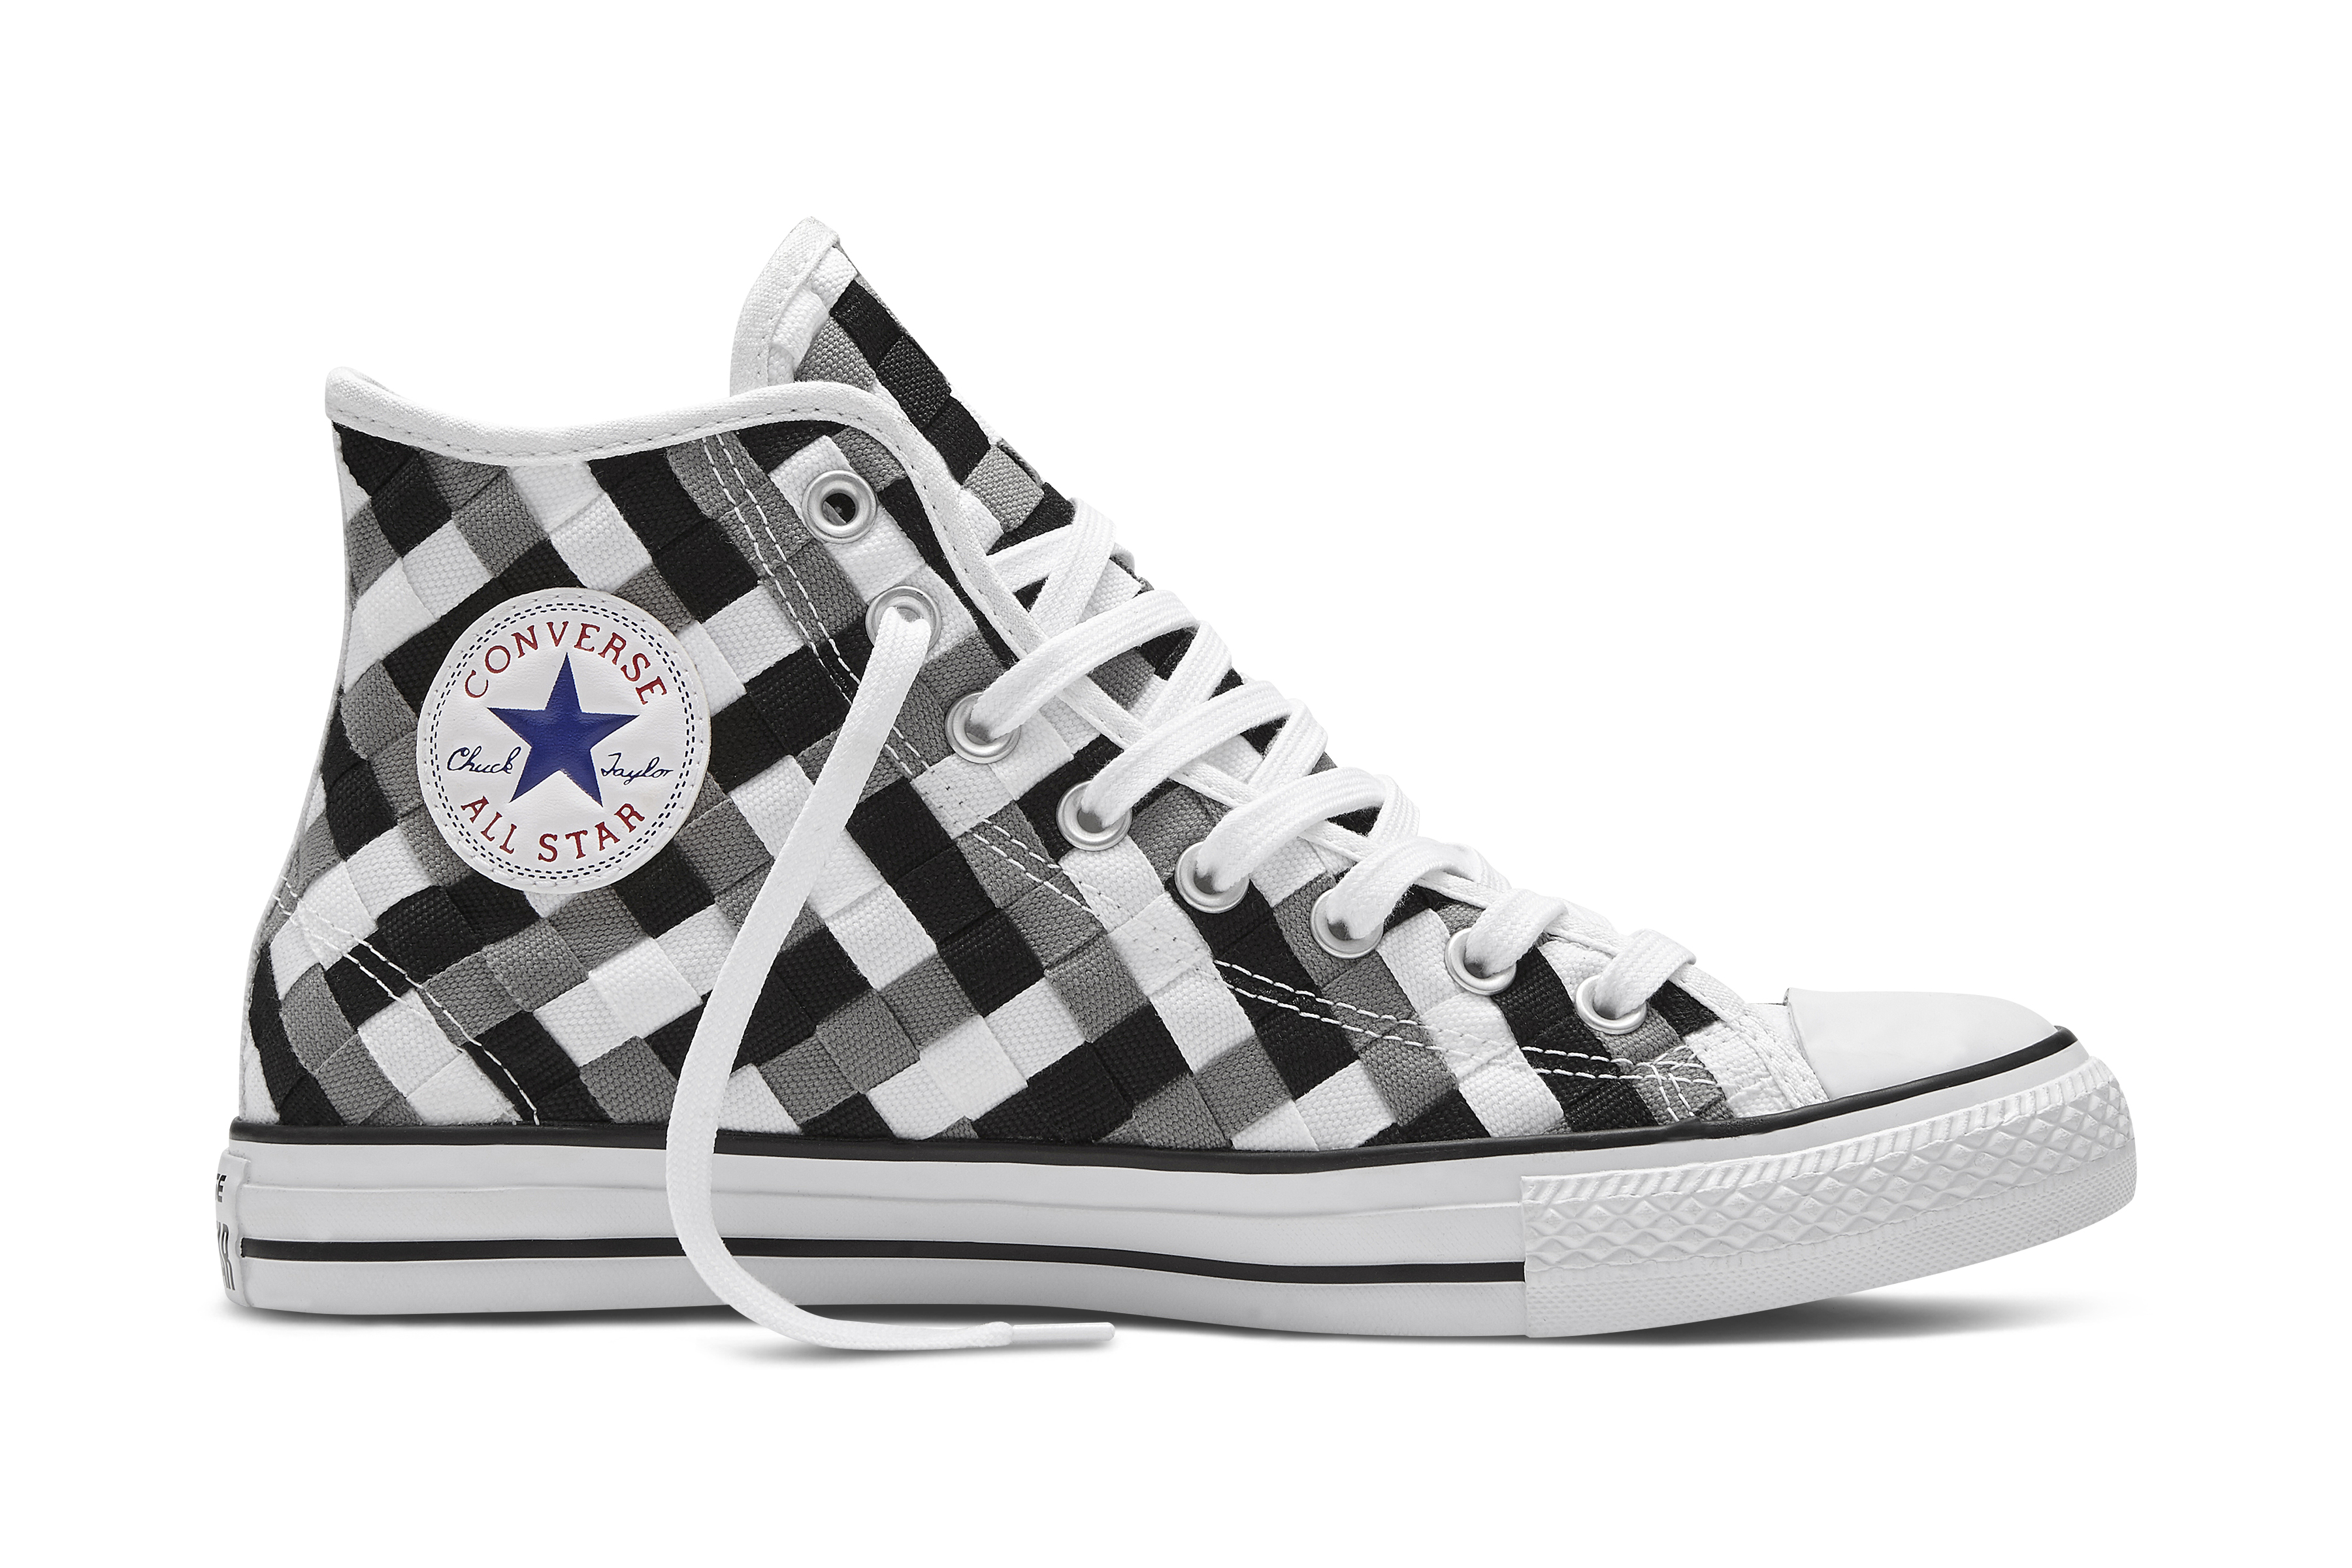 Converse Introduce The Woven Collection